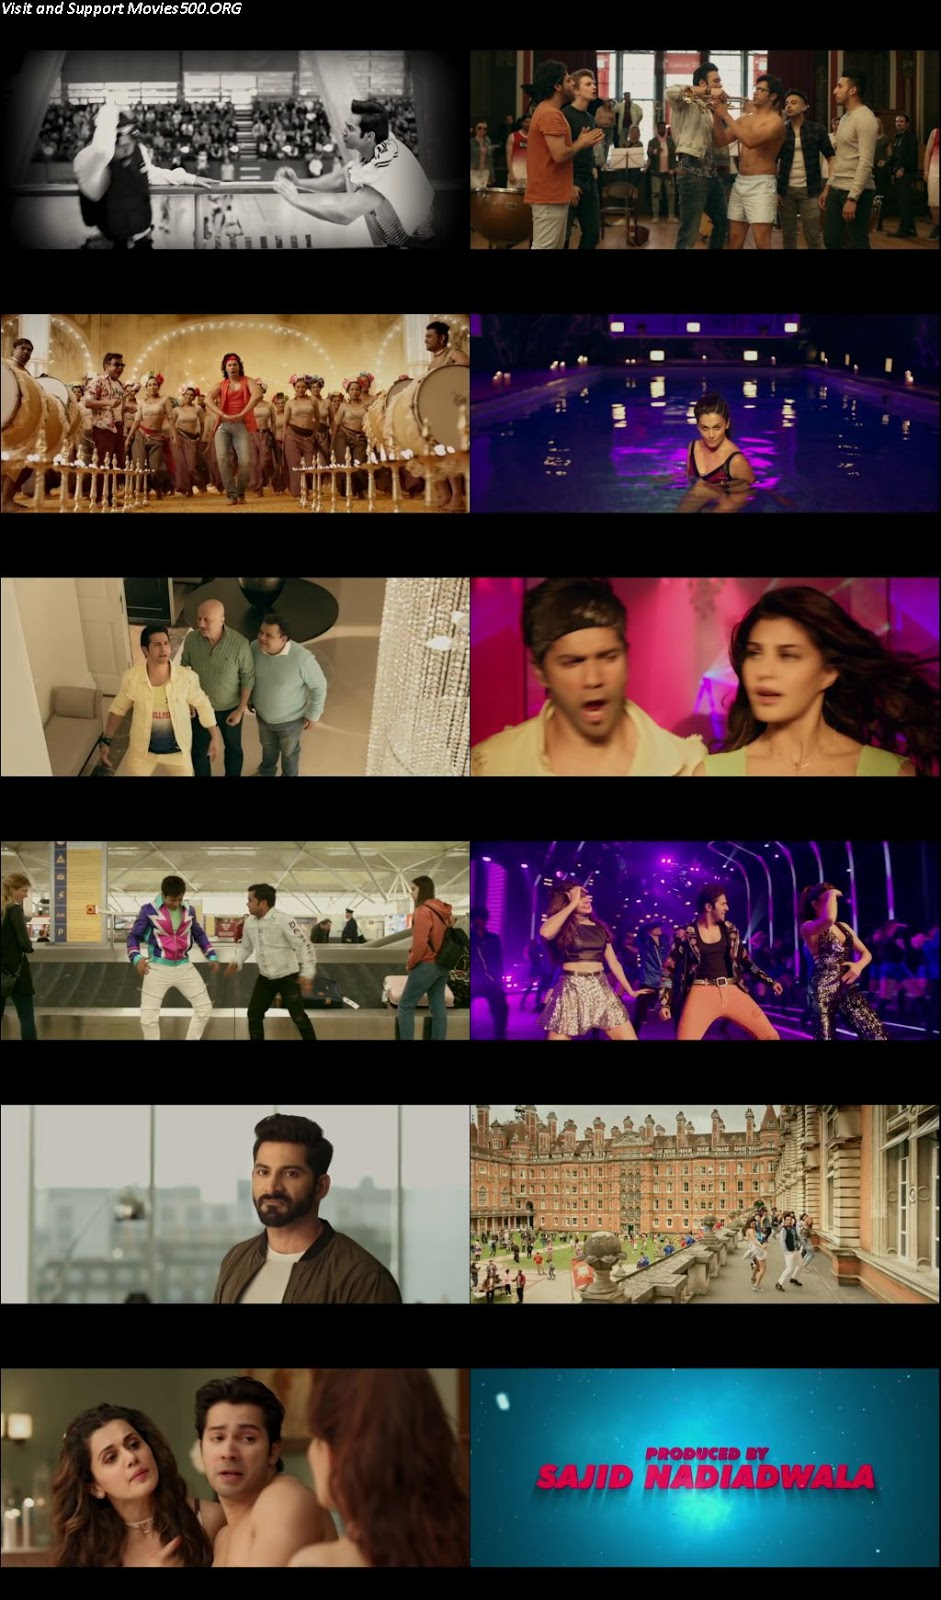 Judwaa 2 2017 Hindi Movie Official Trailer Download 720P at movies500.site